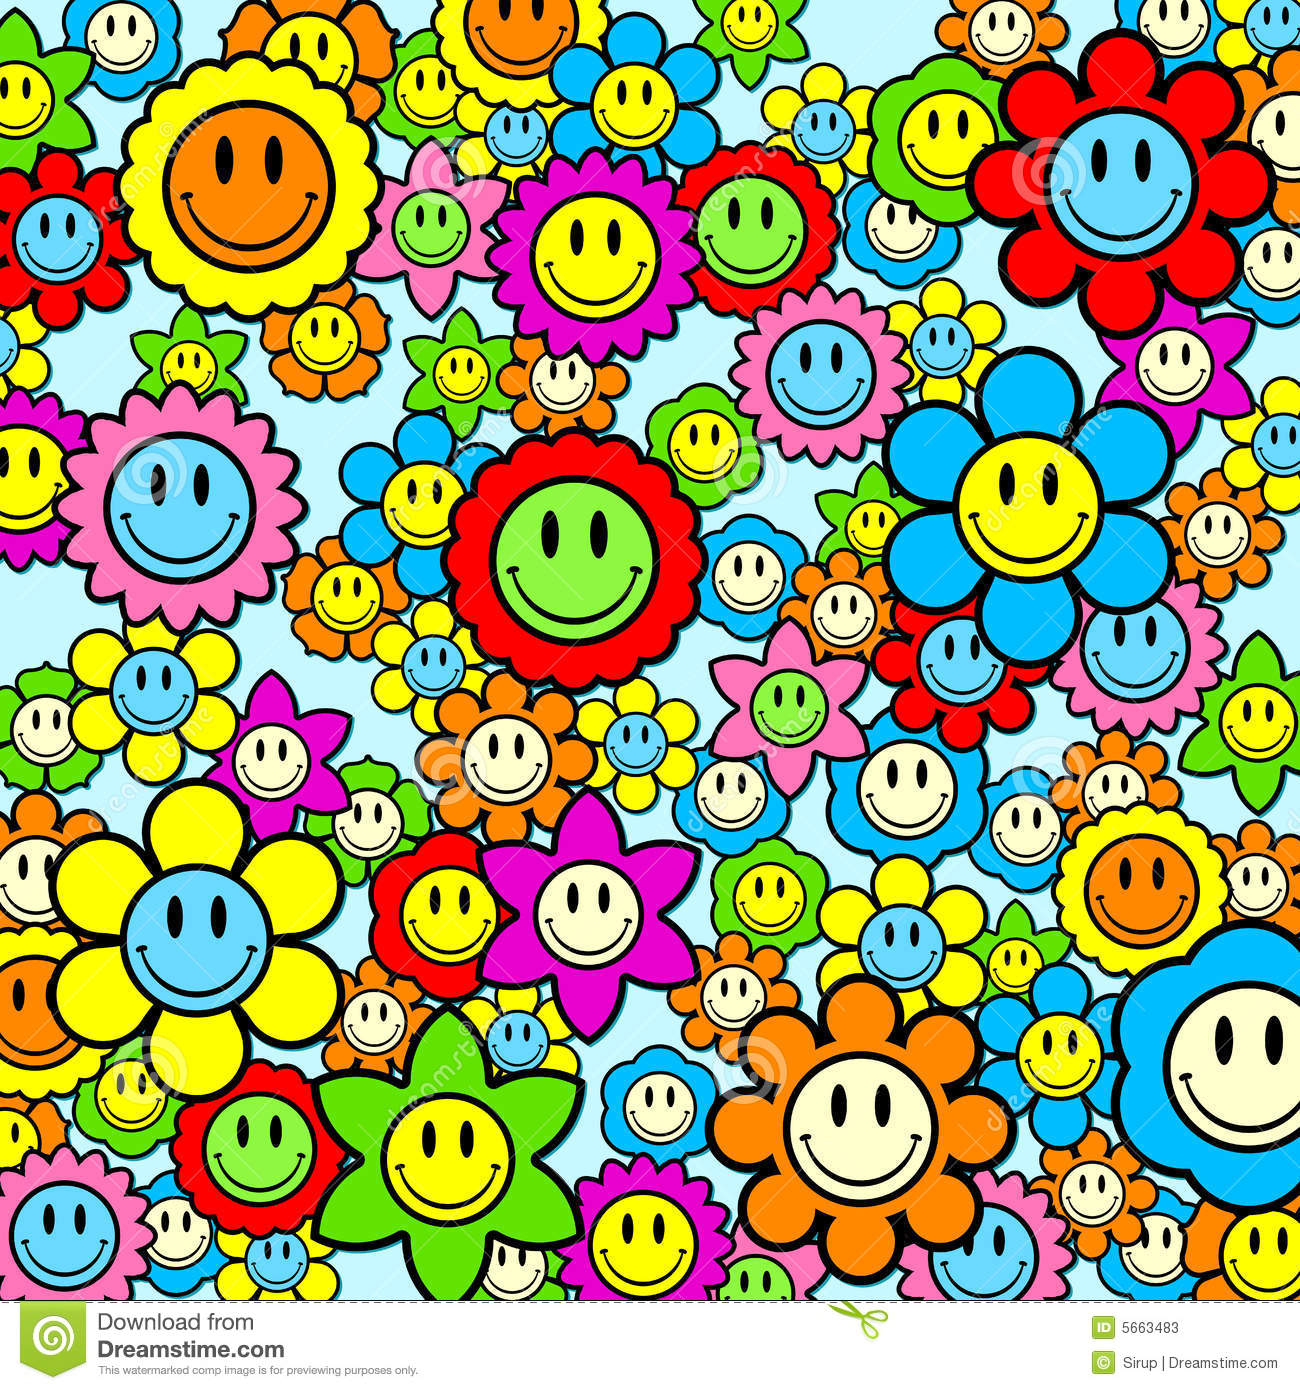 Colorful Smiley Face Flower Background Stock s Image